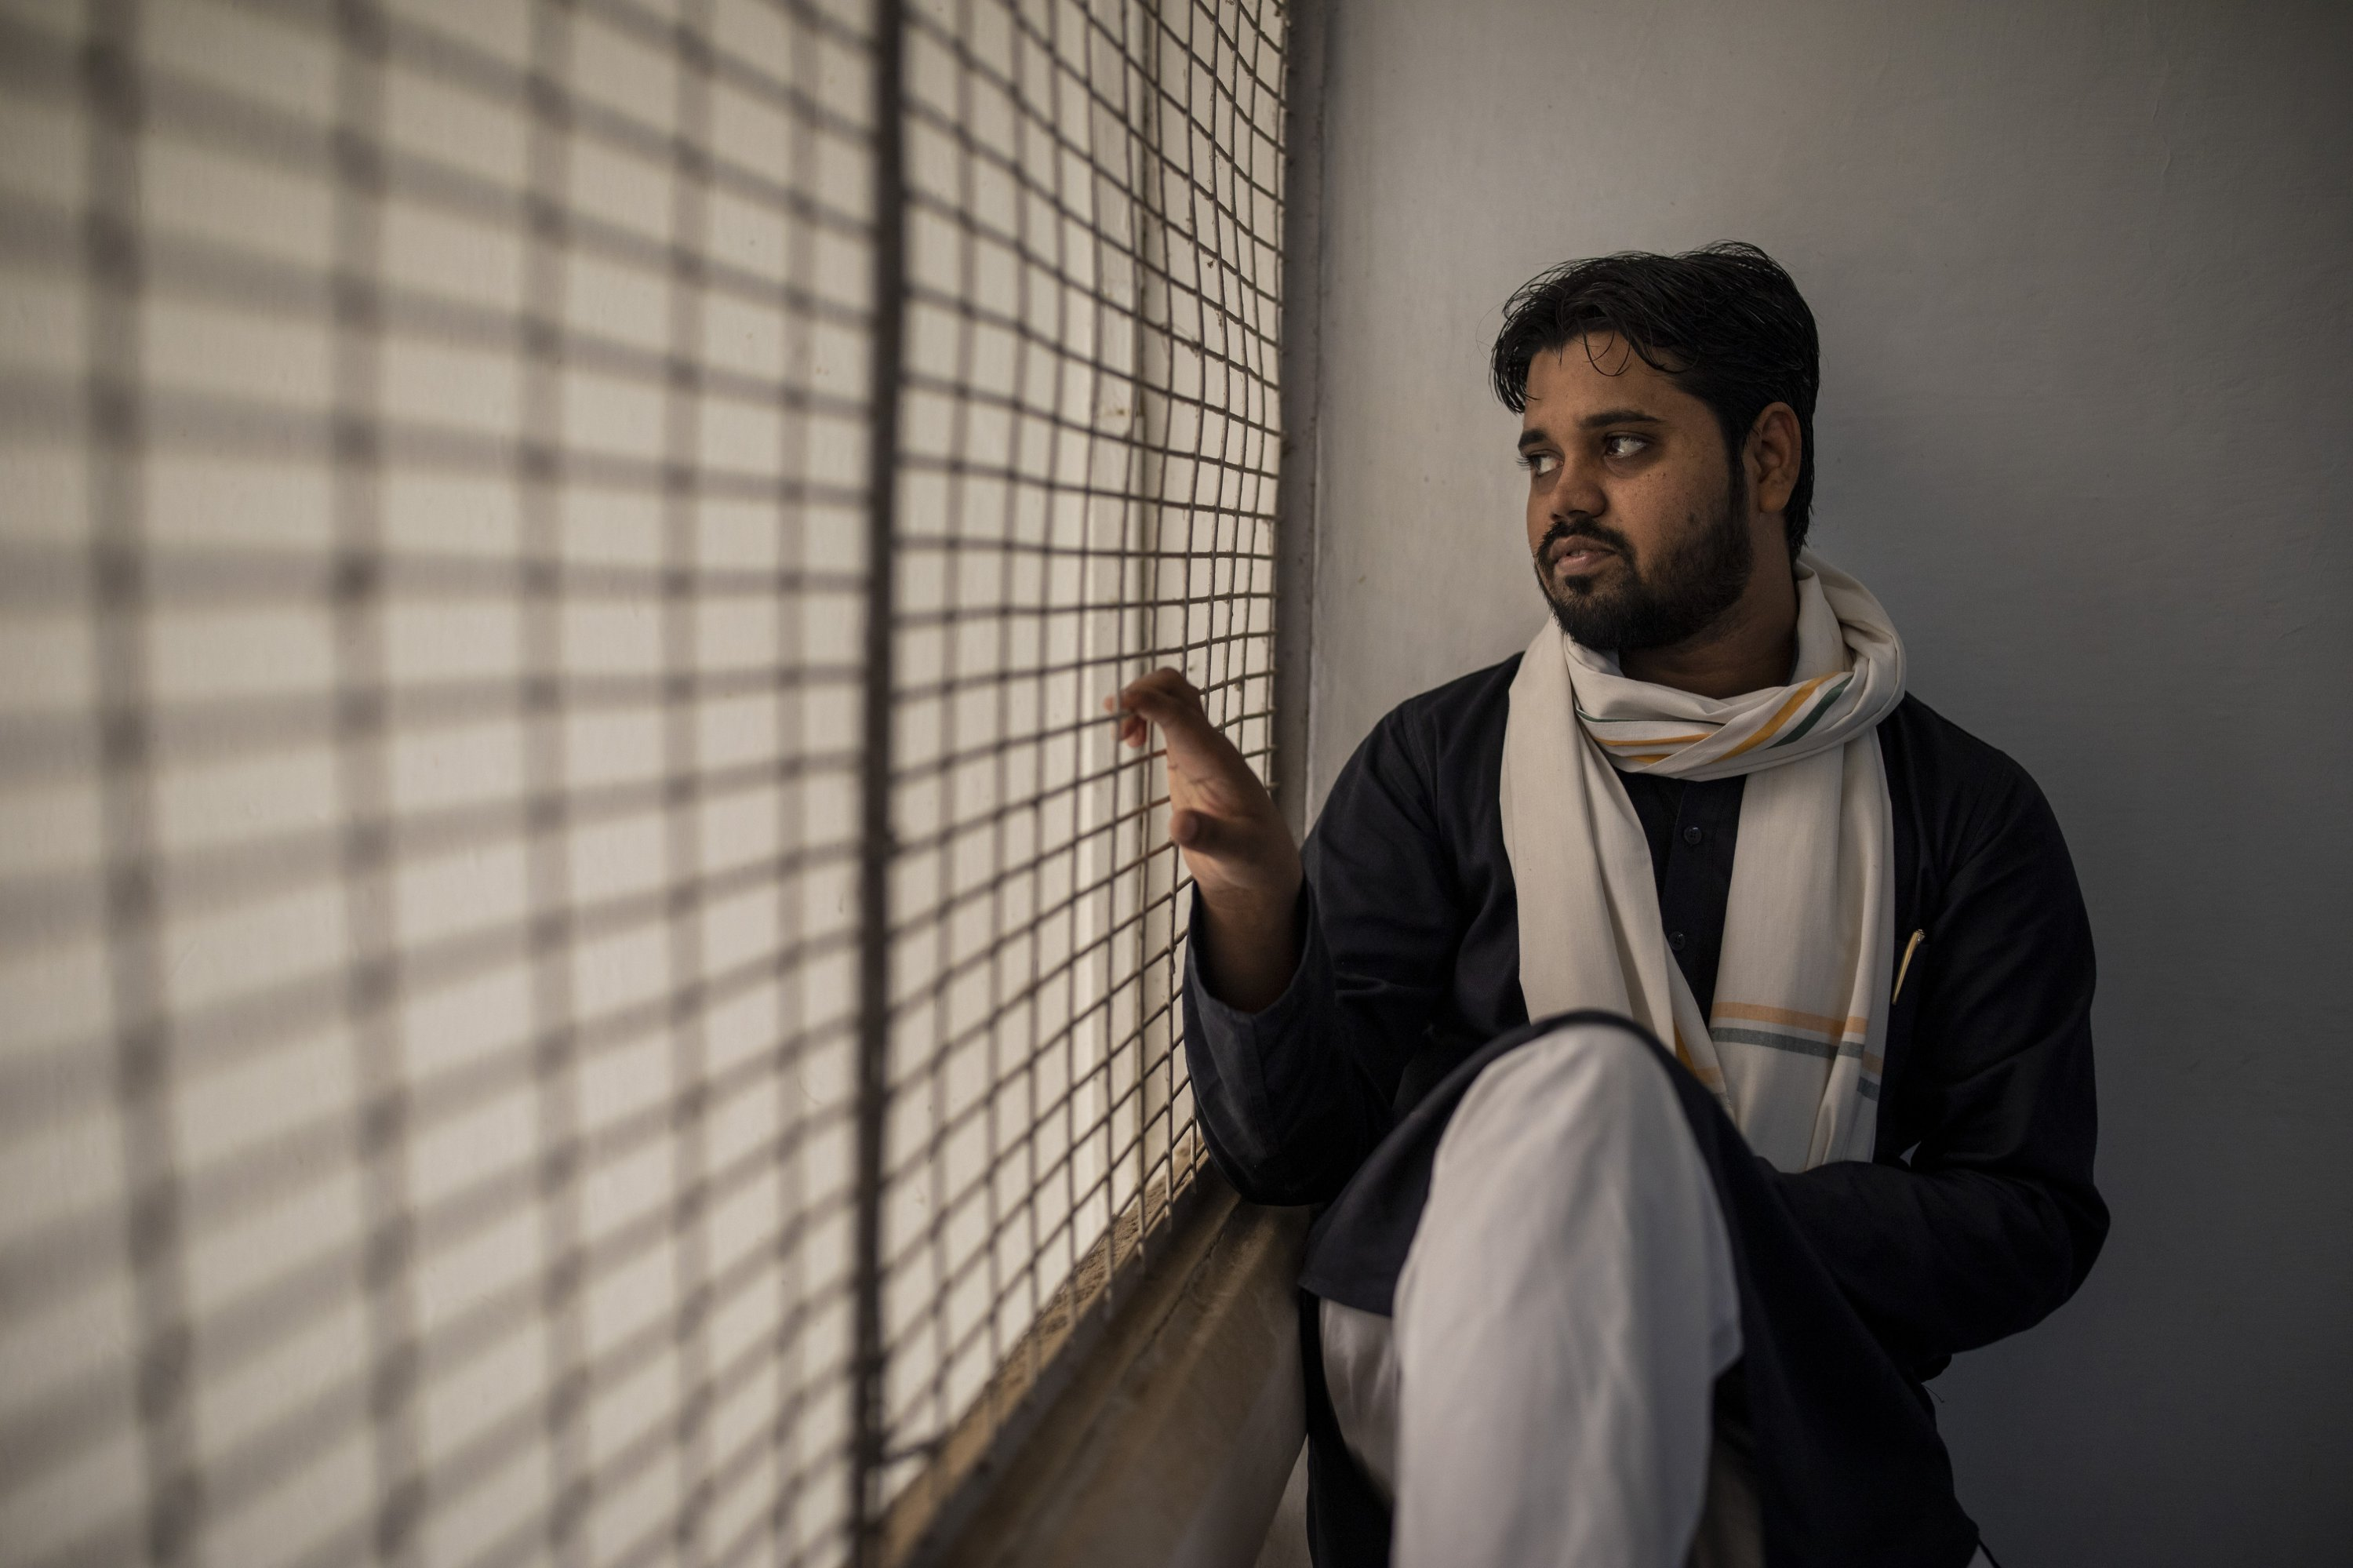 Asif Iqbal Tanha, 24, a student leader, looks out from a window at the Students Islamic Organisation of India headquarters in New Delhi, India, on Aug. 3, 2021. (AP Photo)